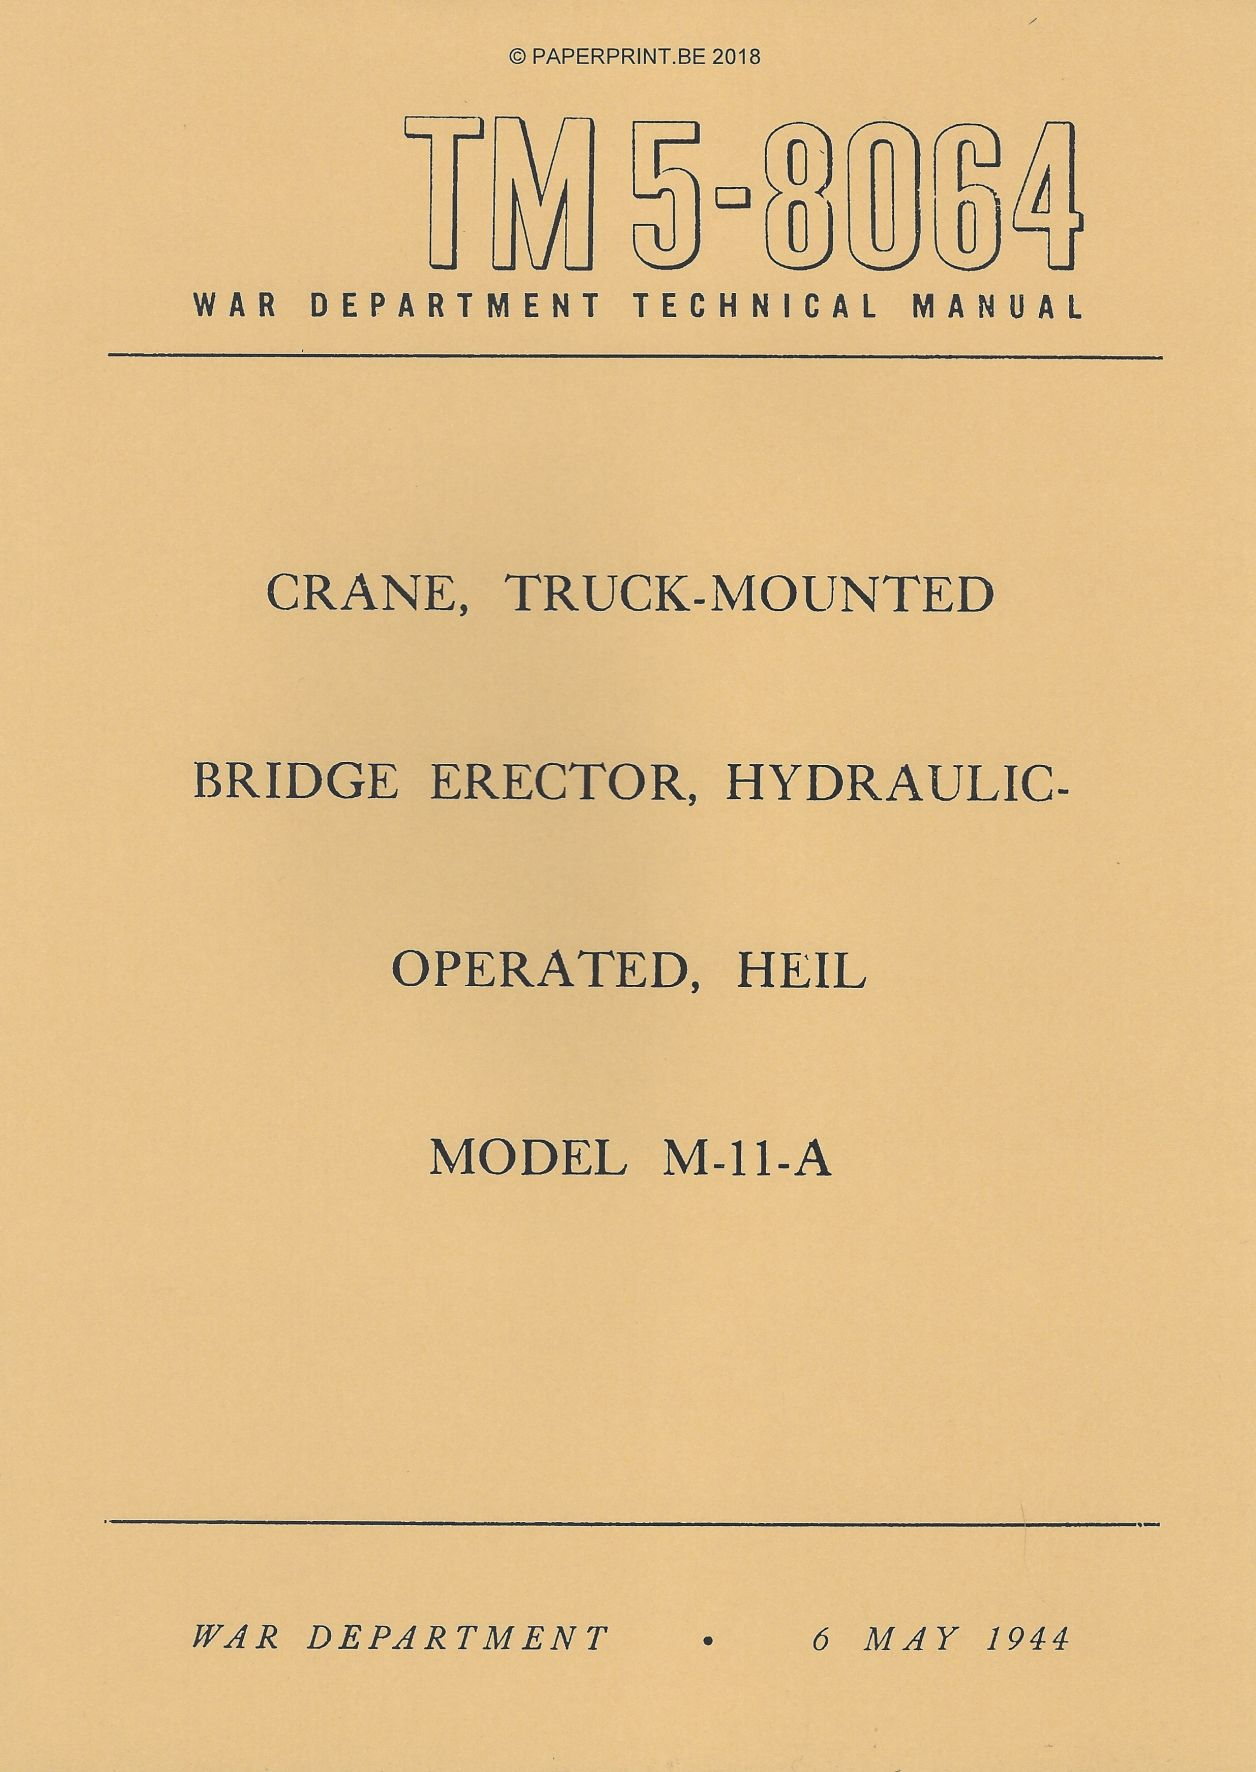 TM 5-8064 US CRANE, TRUCK-MOUNTED BRIDGE ERECTOR, HYDRAULICOPERATED, HEIL MODEL M-11-A